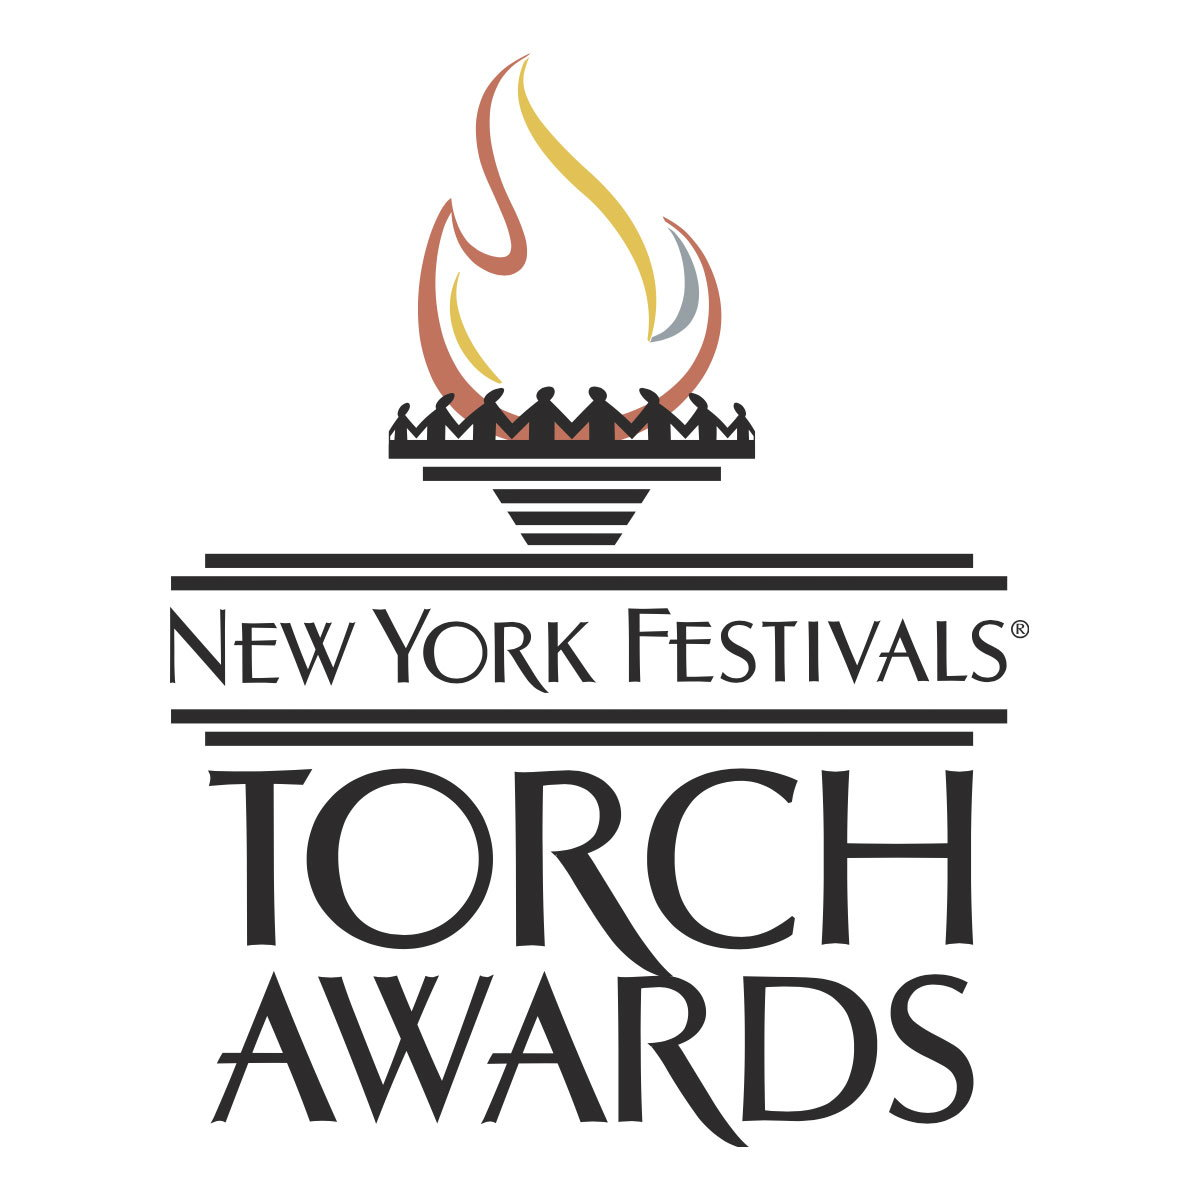 2017 New York Festivals Torch Awards - Call for Entries